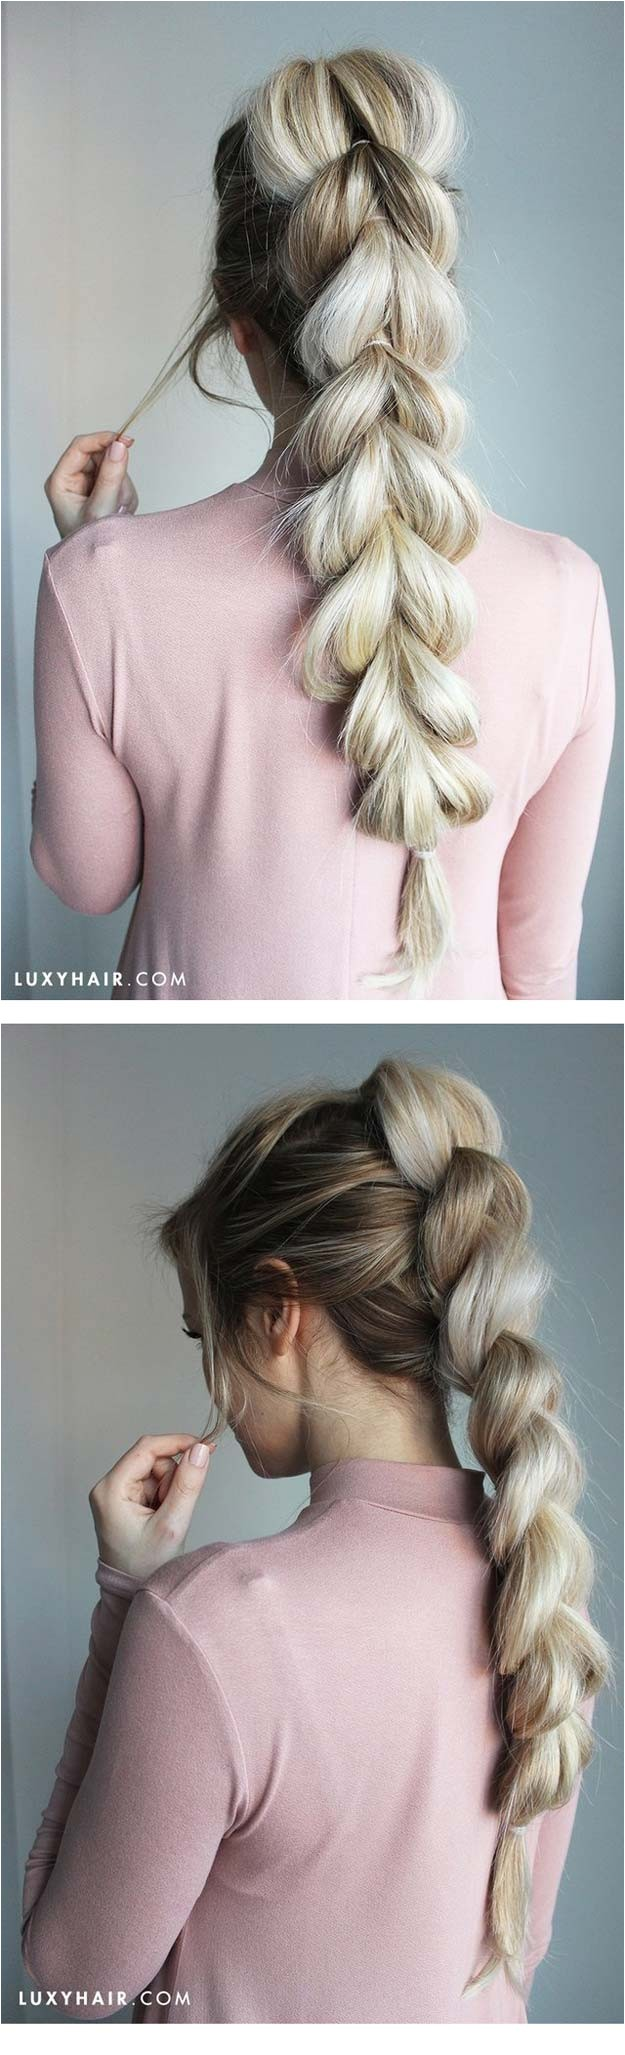 21 tips instantly make hair look thicker